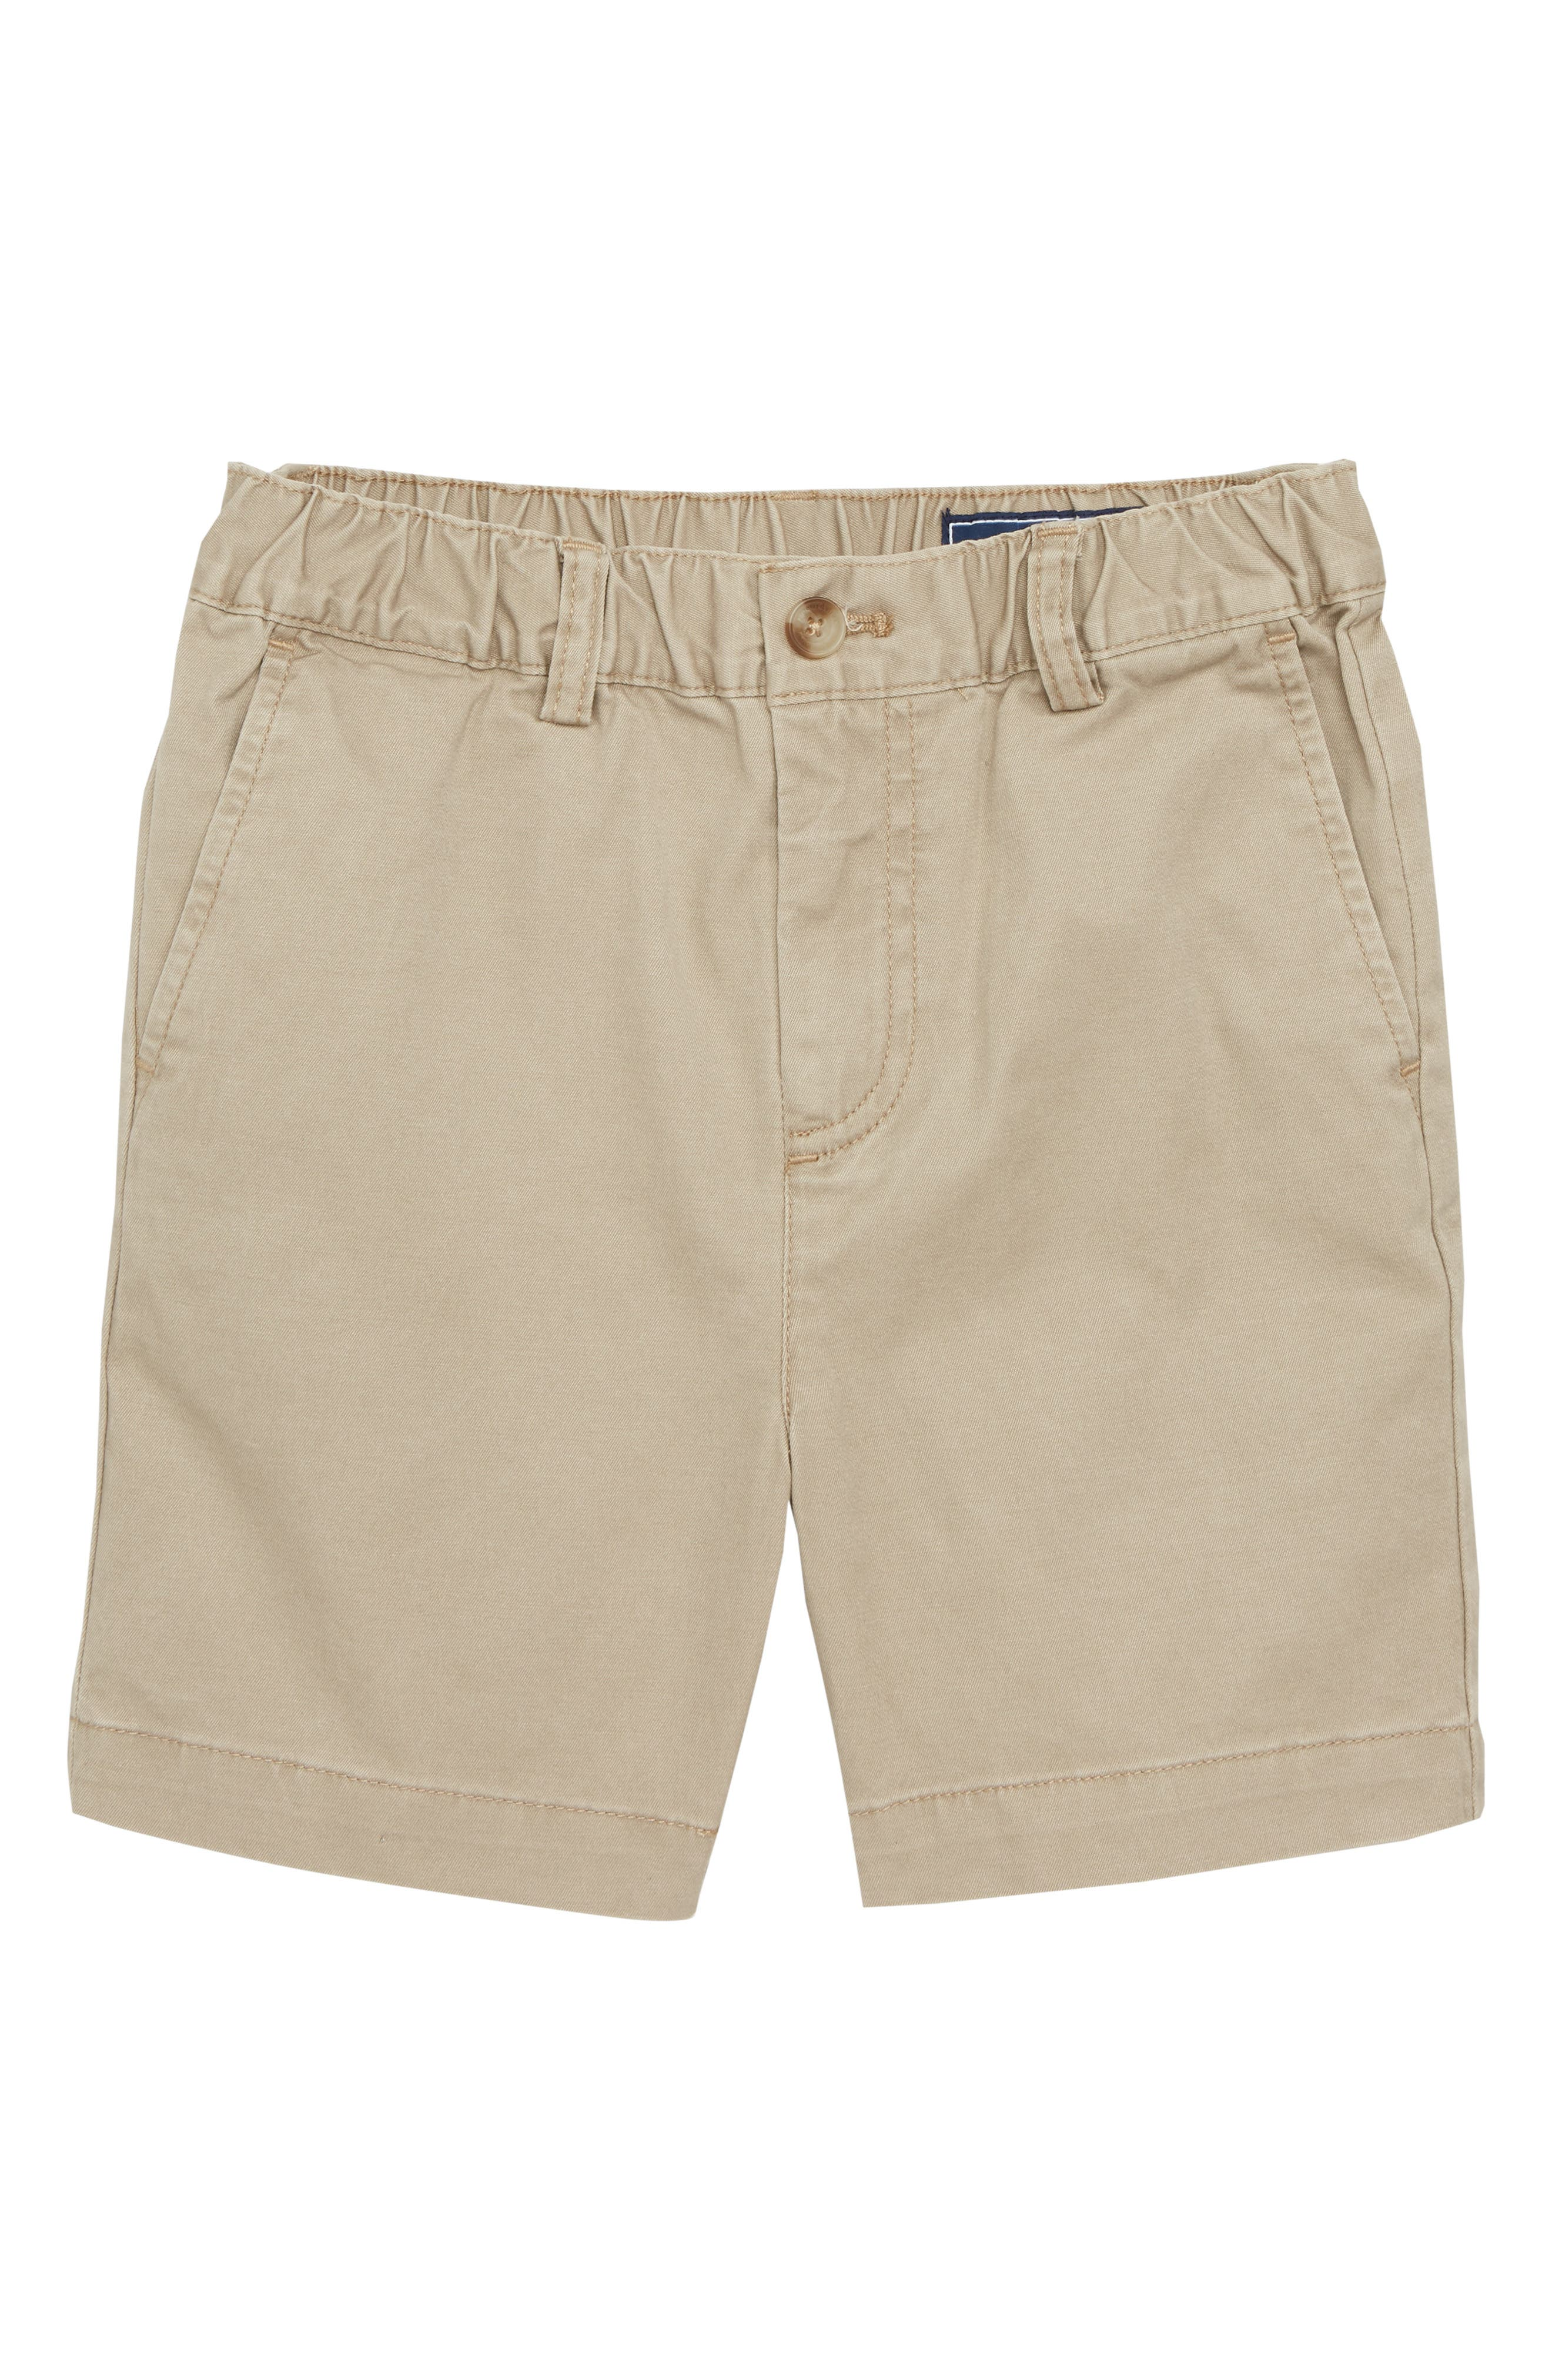 Stretch Jetty Shorts,                         Main,                         color, 250